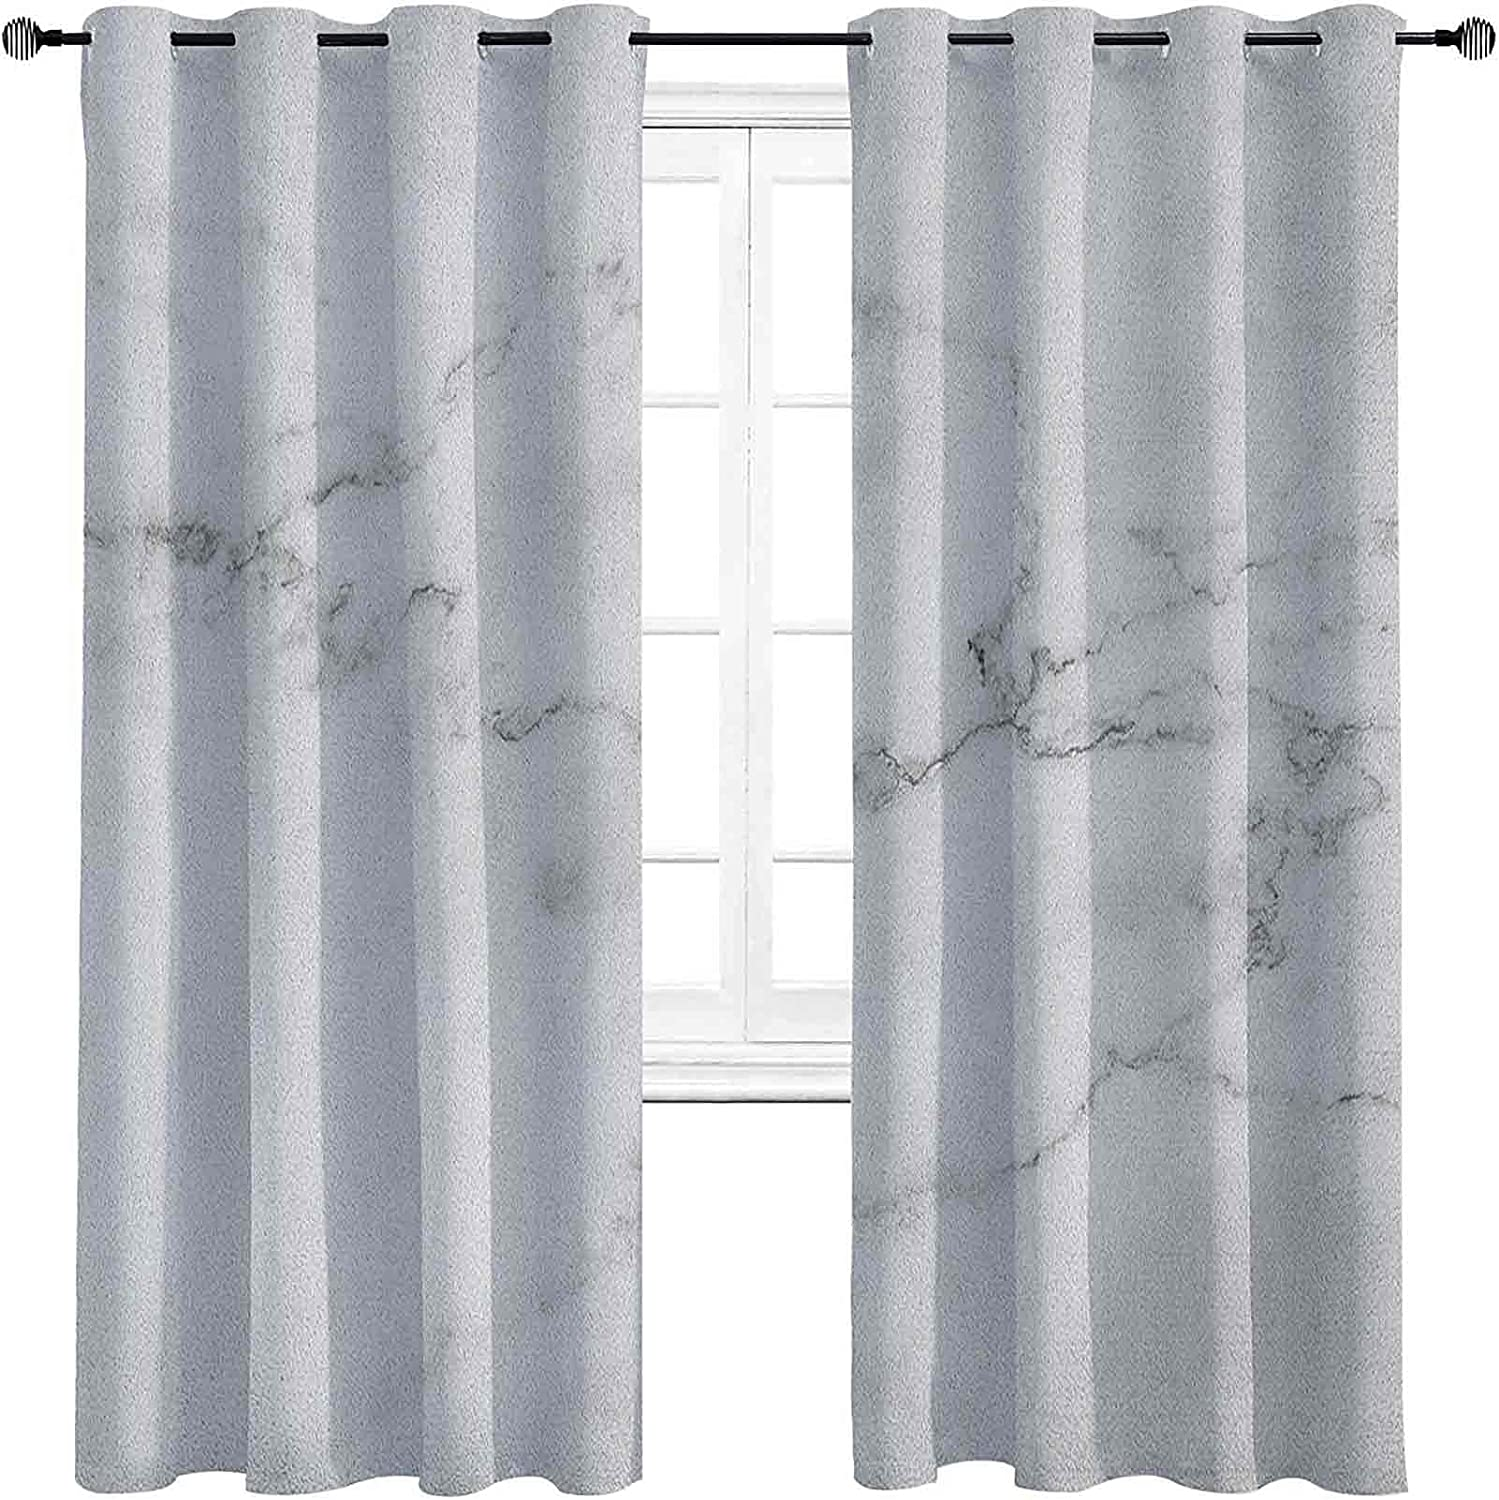 Marble Shading Insulated Curtain Artsy Baltimore Mall M Ranking TOP3 Mineral Surface Nature